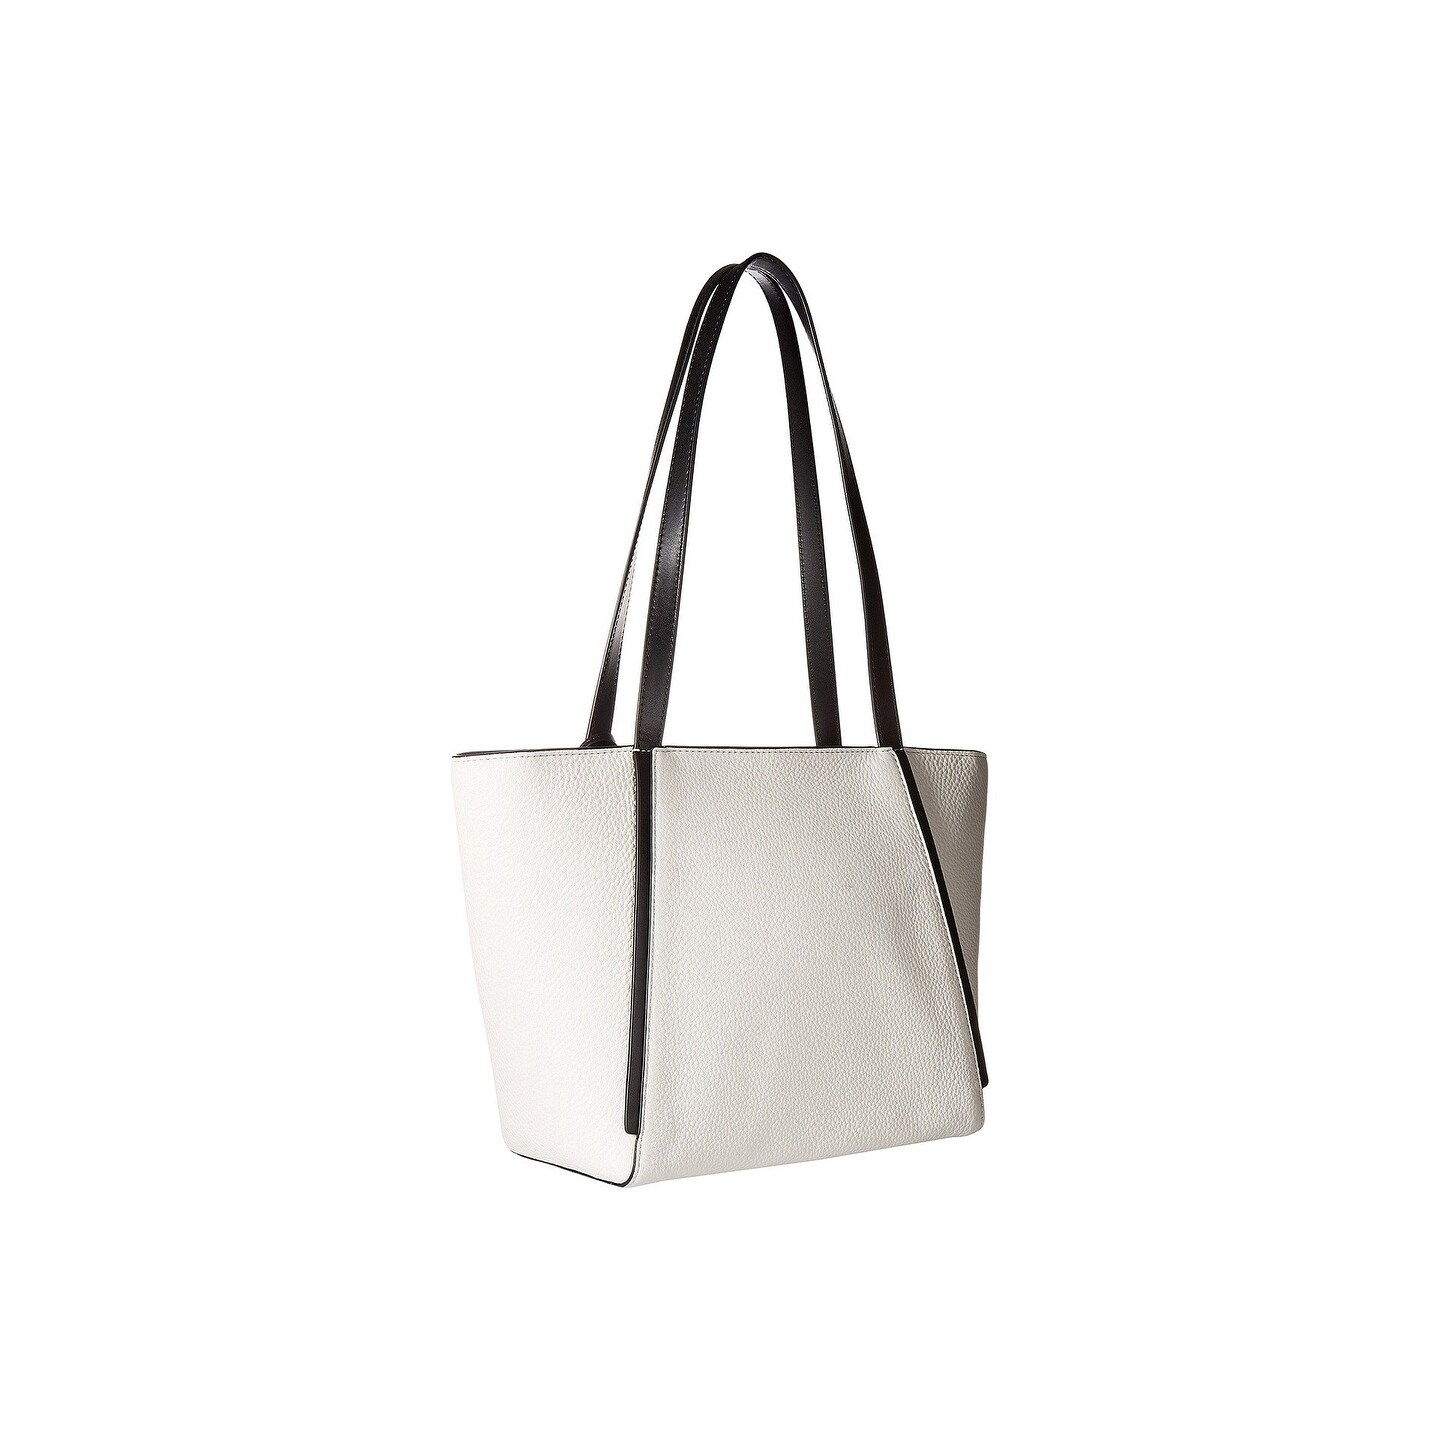 116ce01b275f Shop MICHAEL Michael Kors Whitney Small Top Zip Optic White/Black Tote - On  Sale - Free Shipping Today - Overstock - 22364349